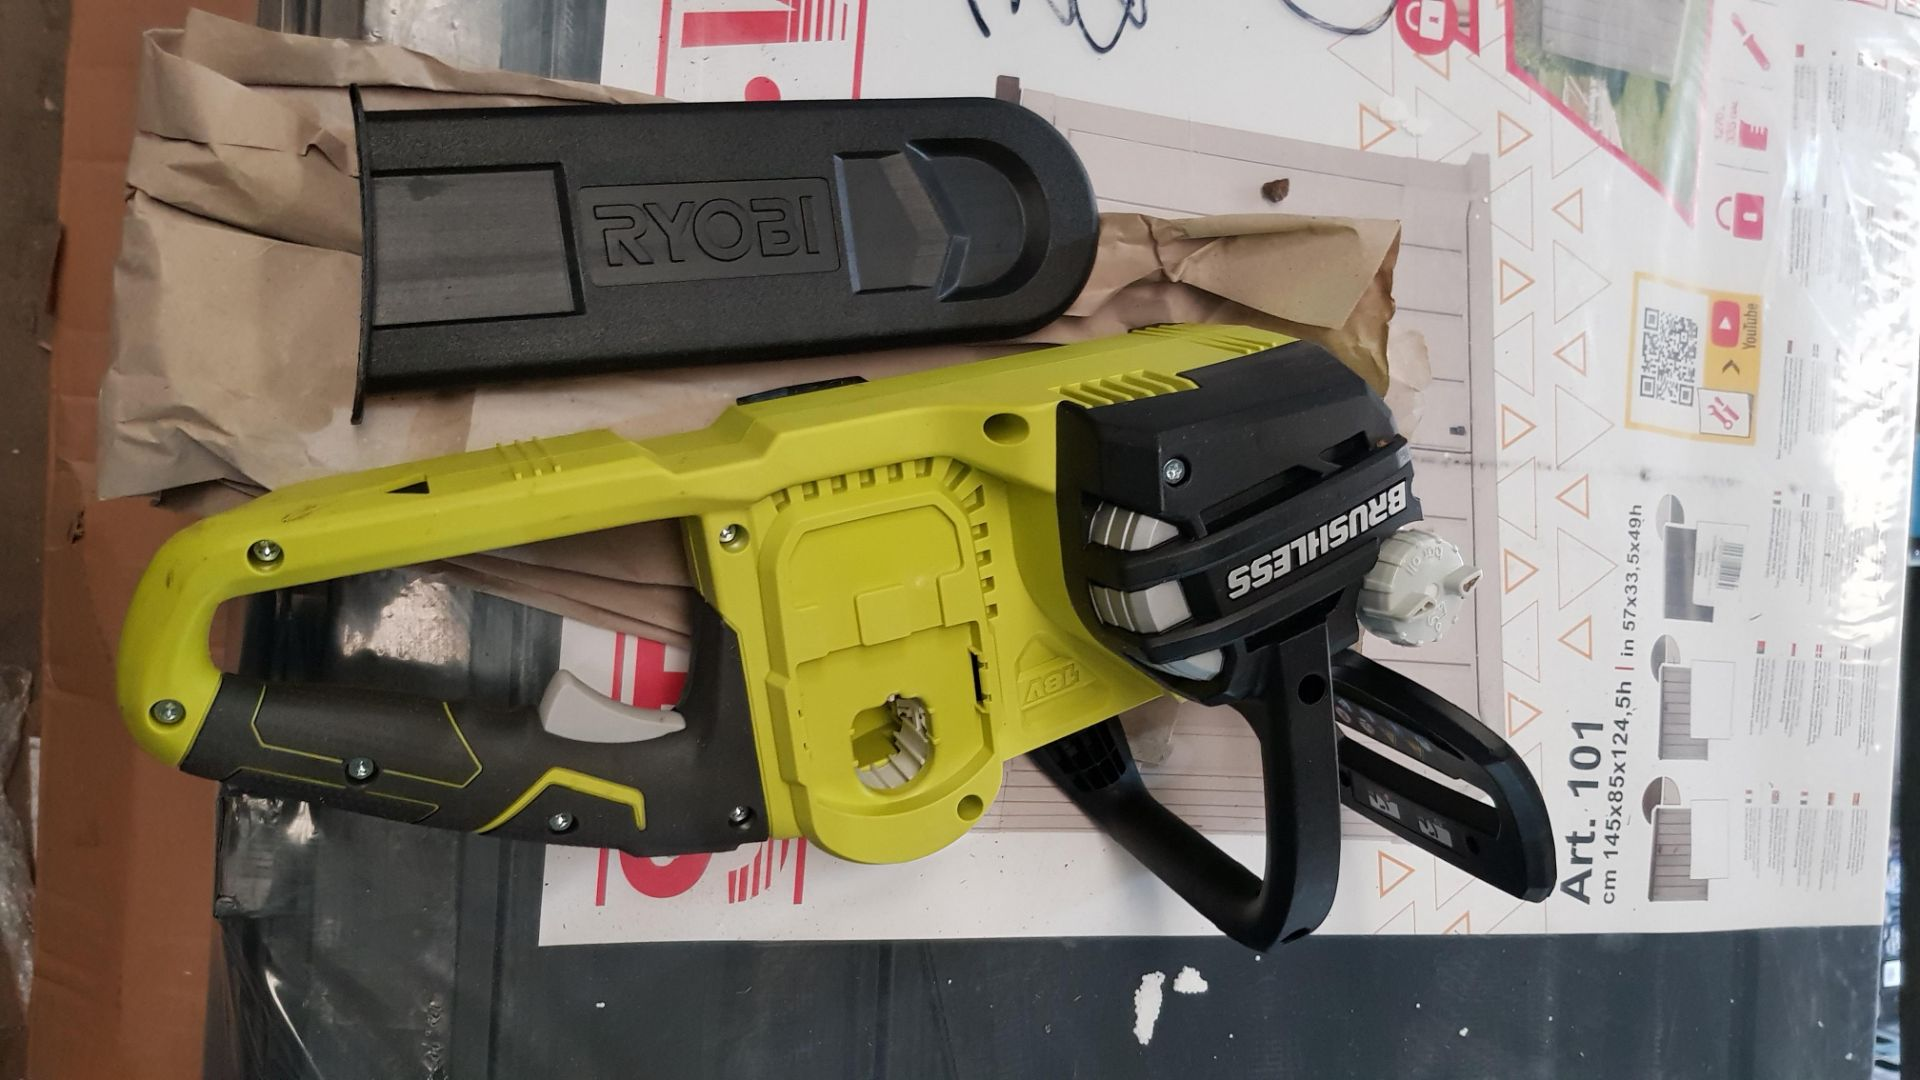 (P9) 1x Ryobi One+ Brushless 18V Cordless Chainsaw RRP £160. (With Battery & Charger) - Image 8 of 8